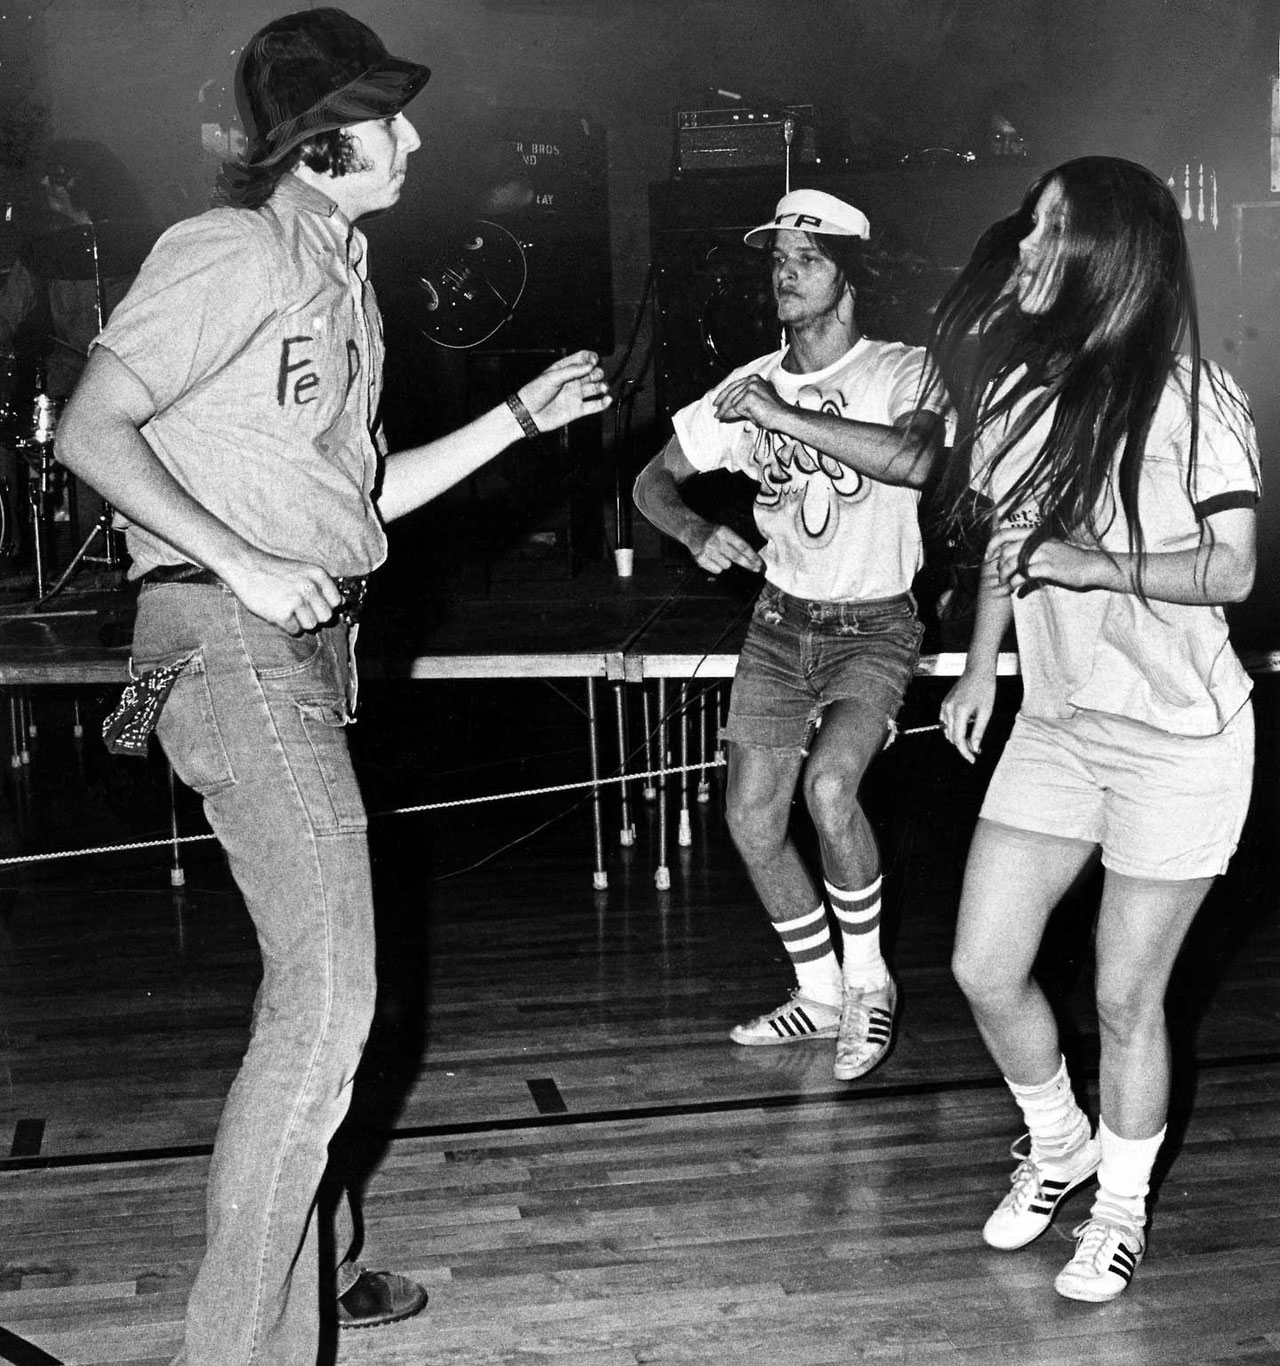 Dance marathon in Pittsburgy, 1973